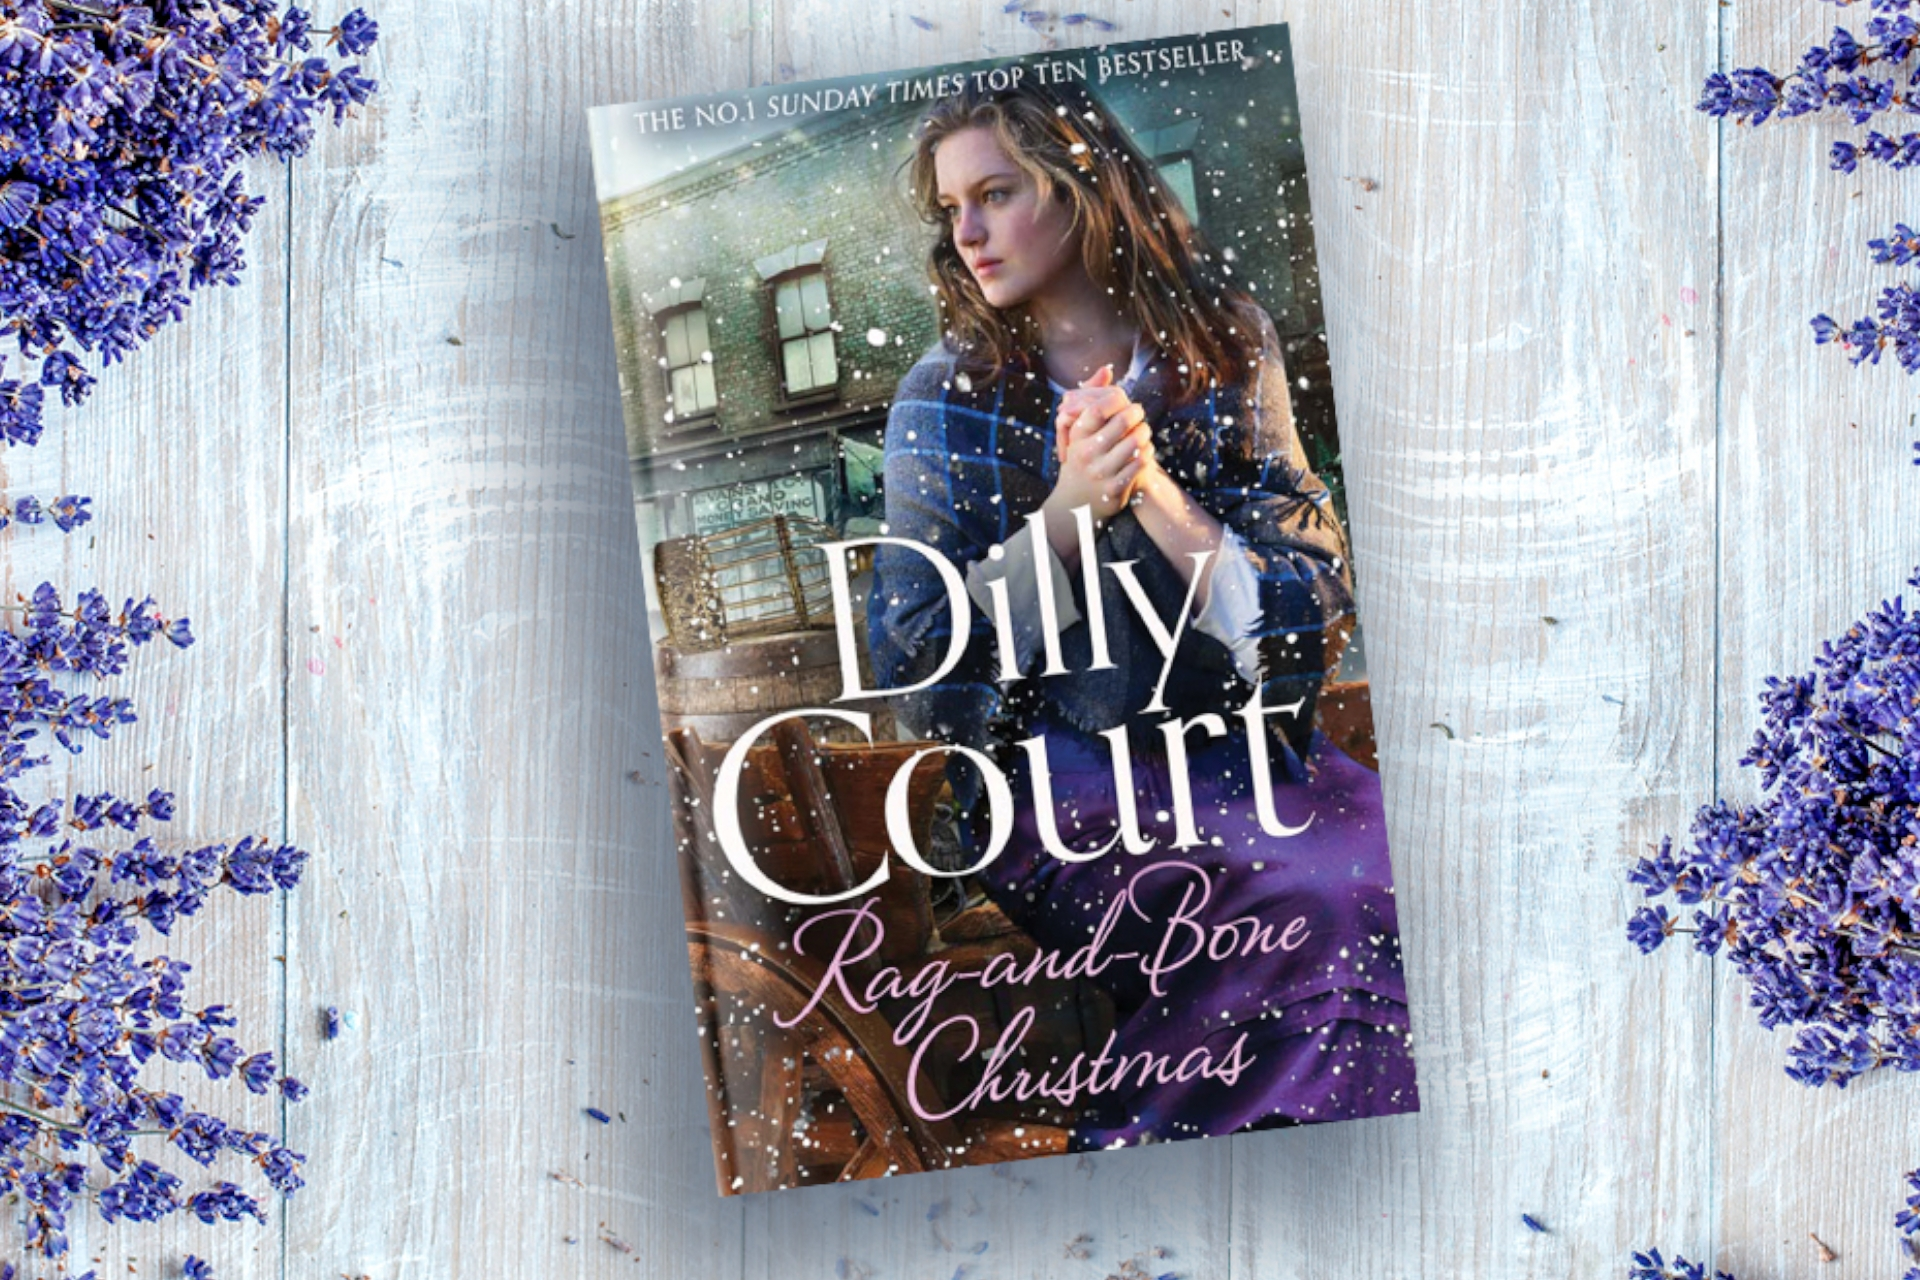 Fall in Love With Dilly Court - Celebrate the release of Dilly Court's 40th Book!